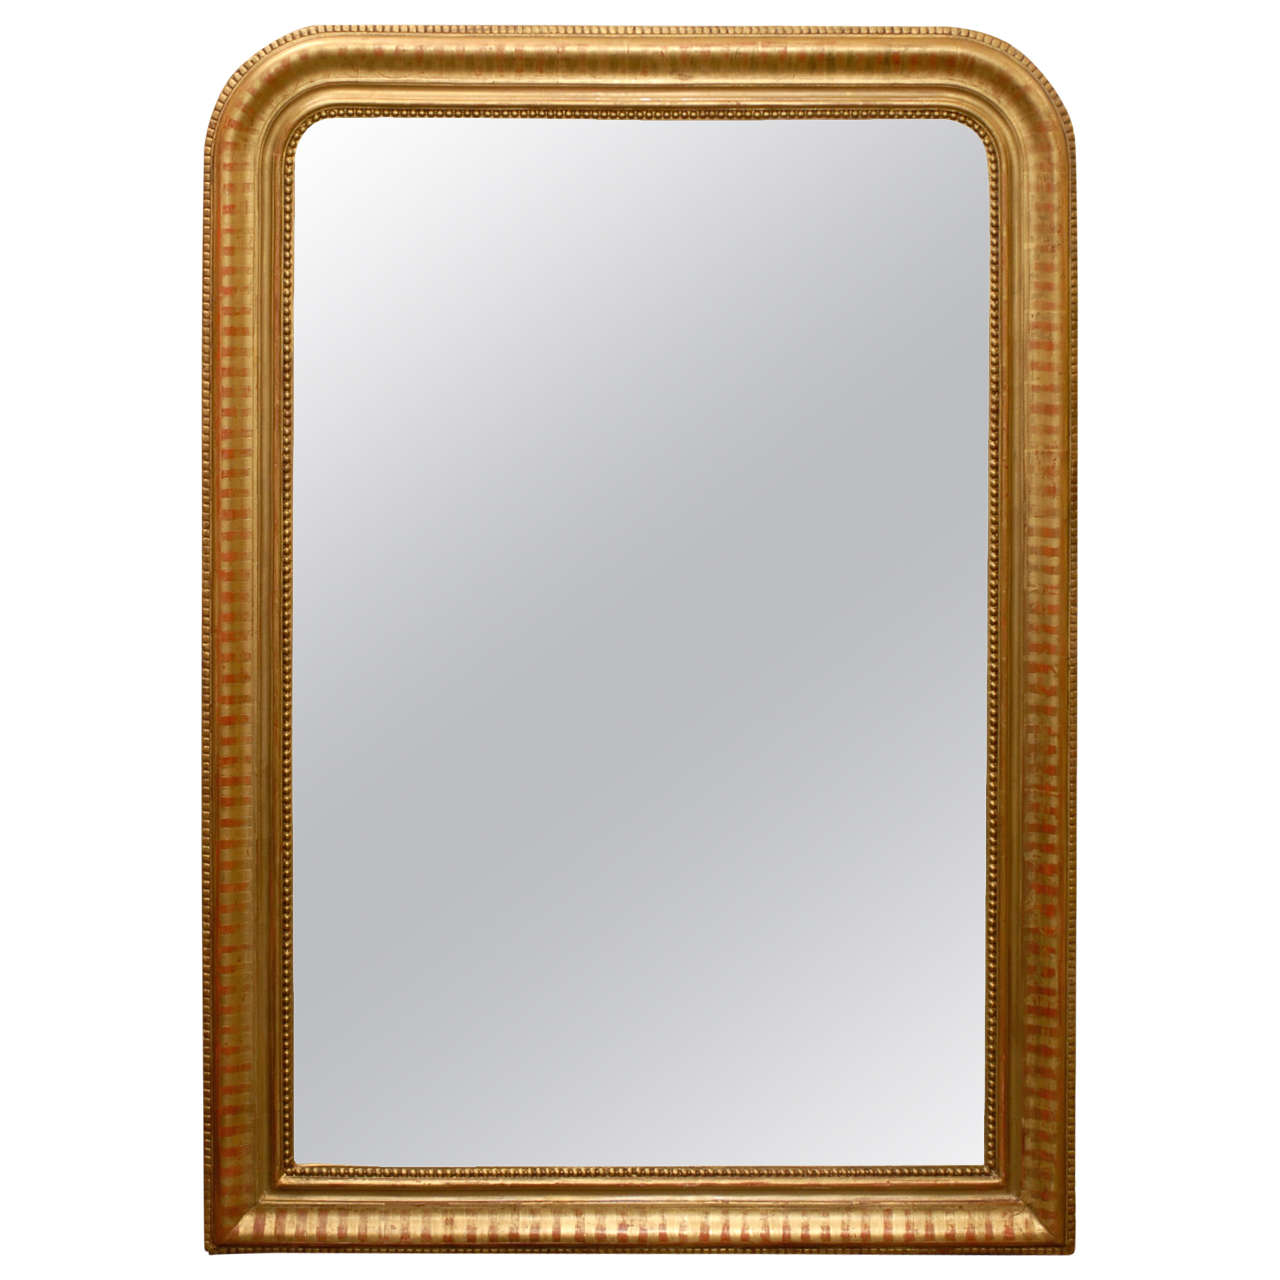 40 Best French Country Furniture Images On Pinterest: Large French Gilt Louis Philippe Style Mirror At 1stdibs